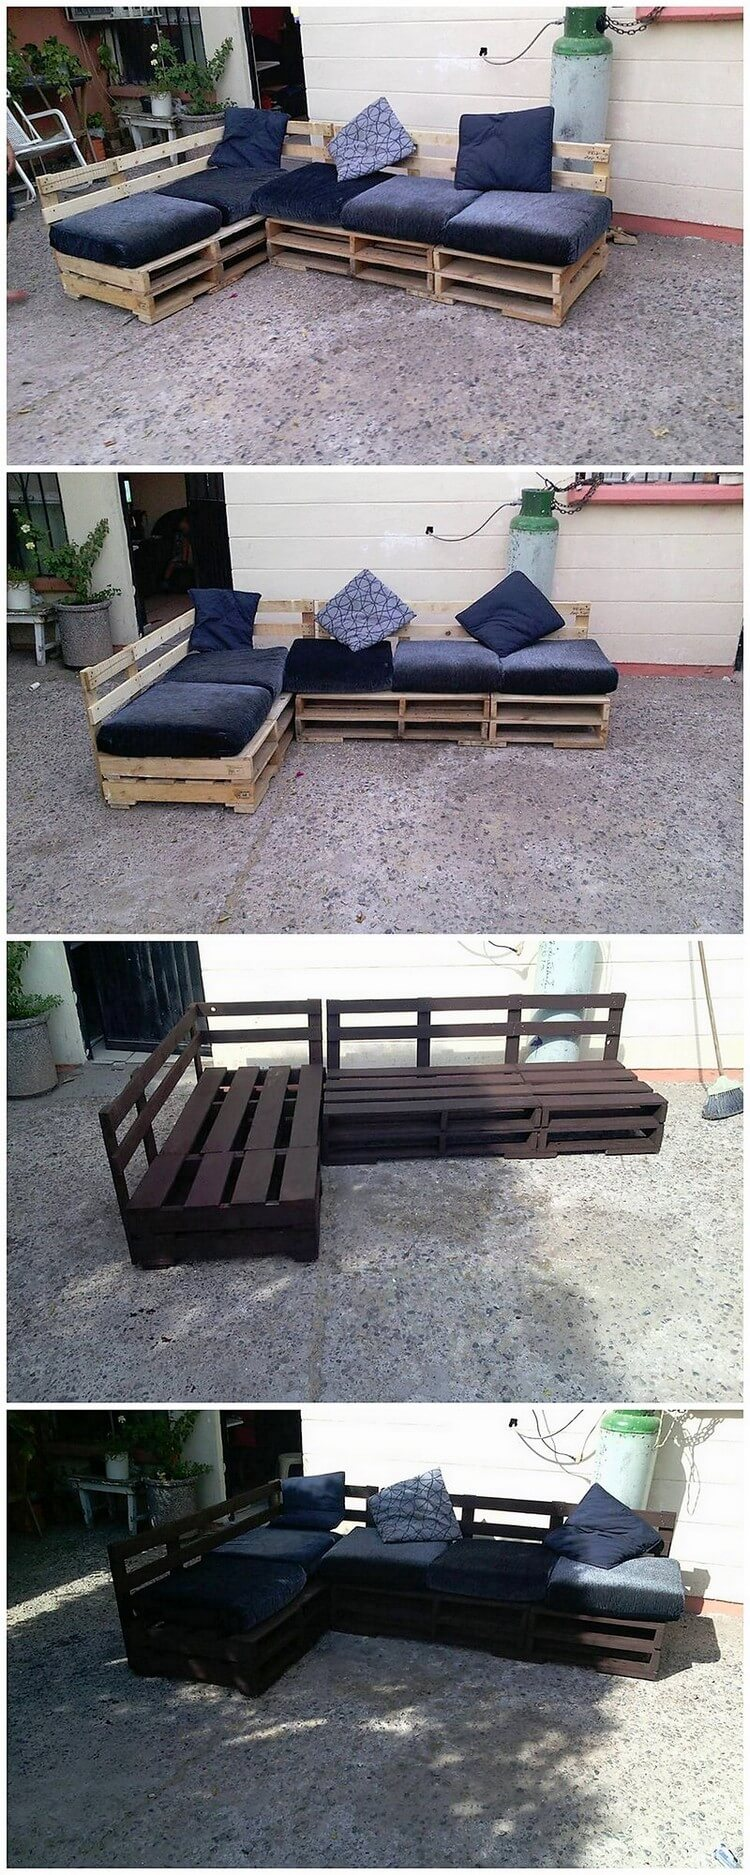 Remarkable Shipping Wood Pallets Recycling Ideas Pallet Wood  # Muebles Con Tarimas